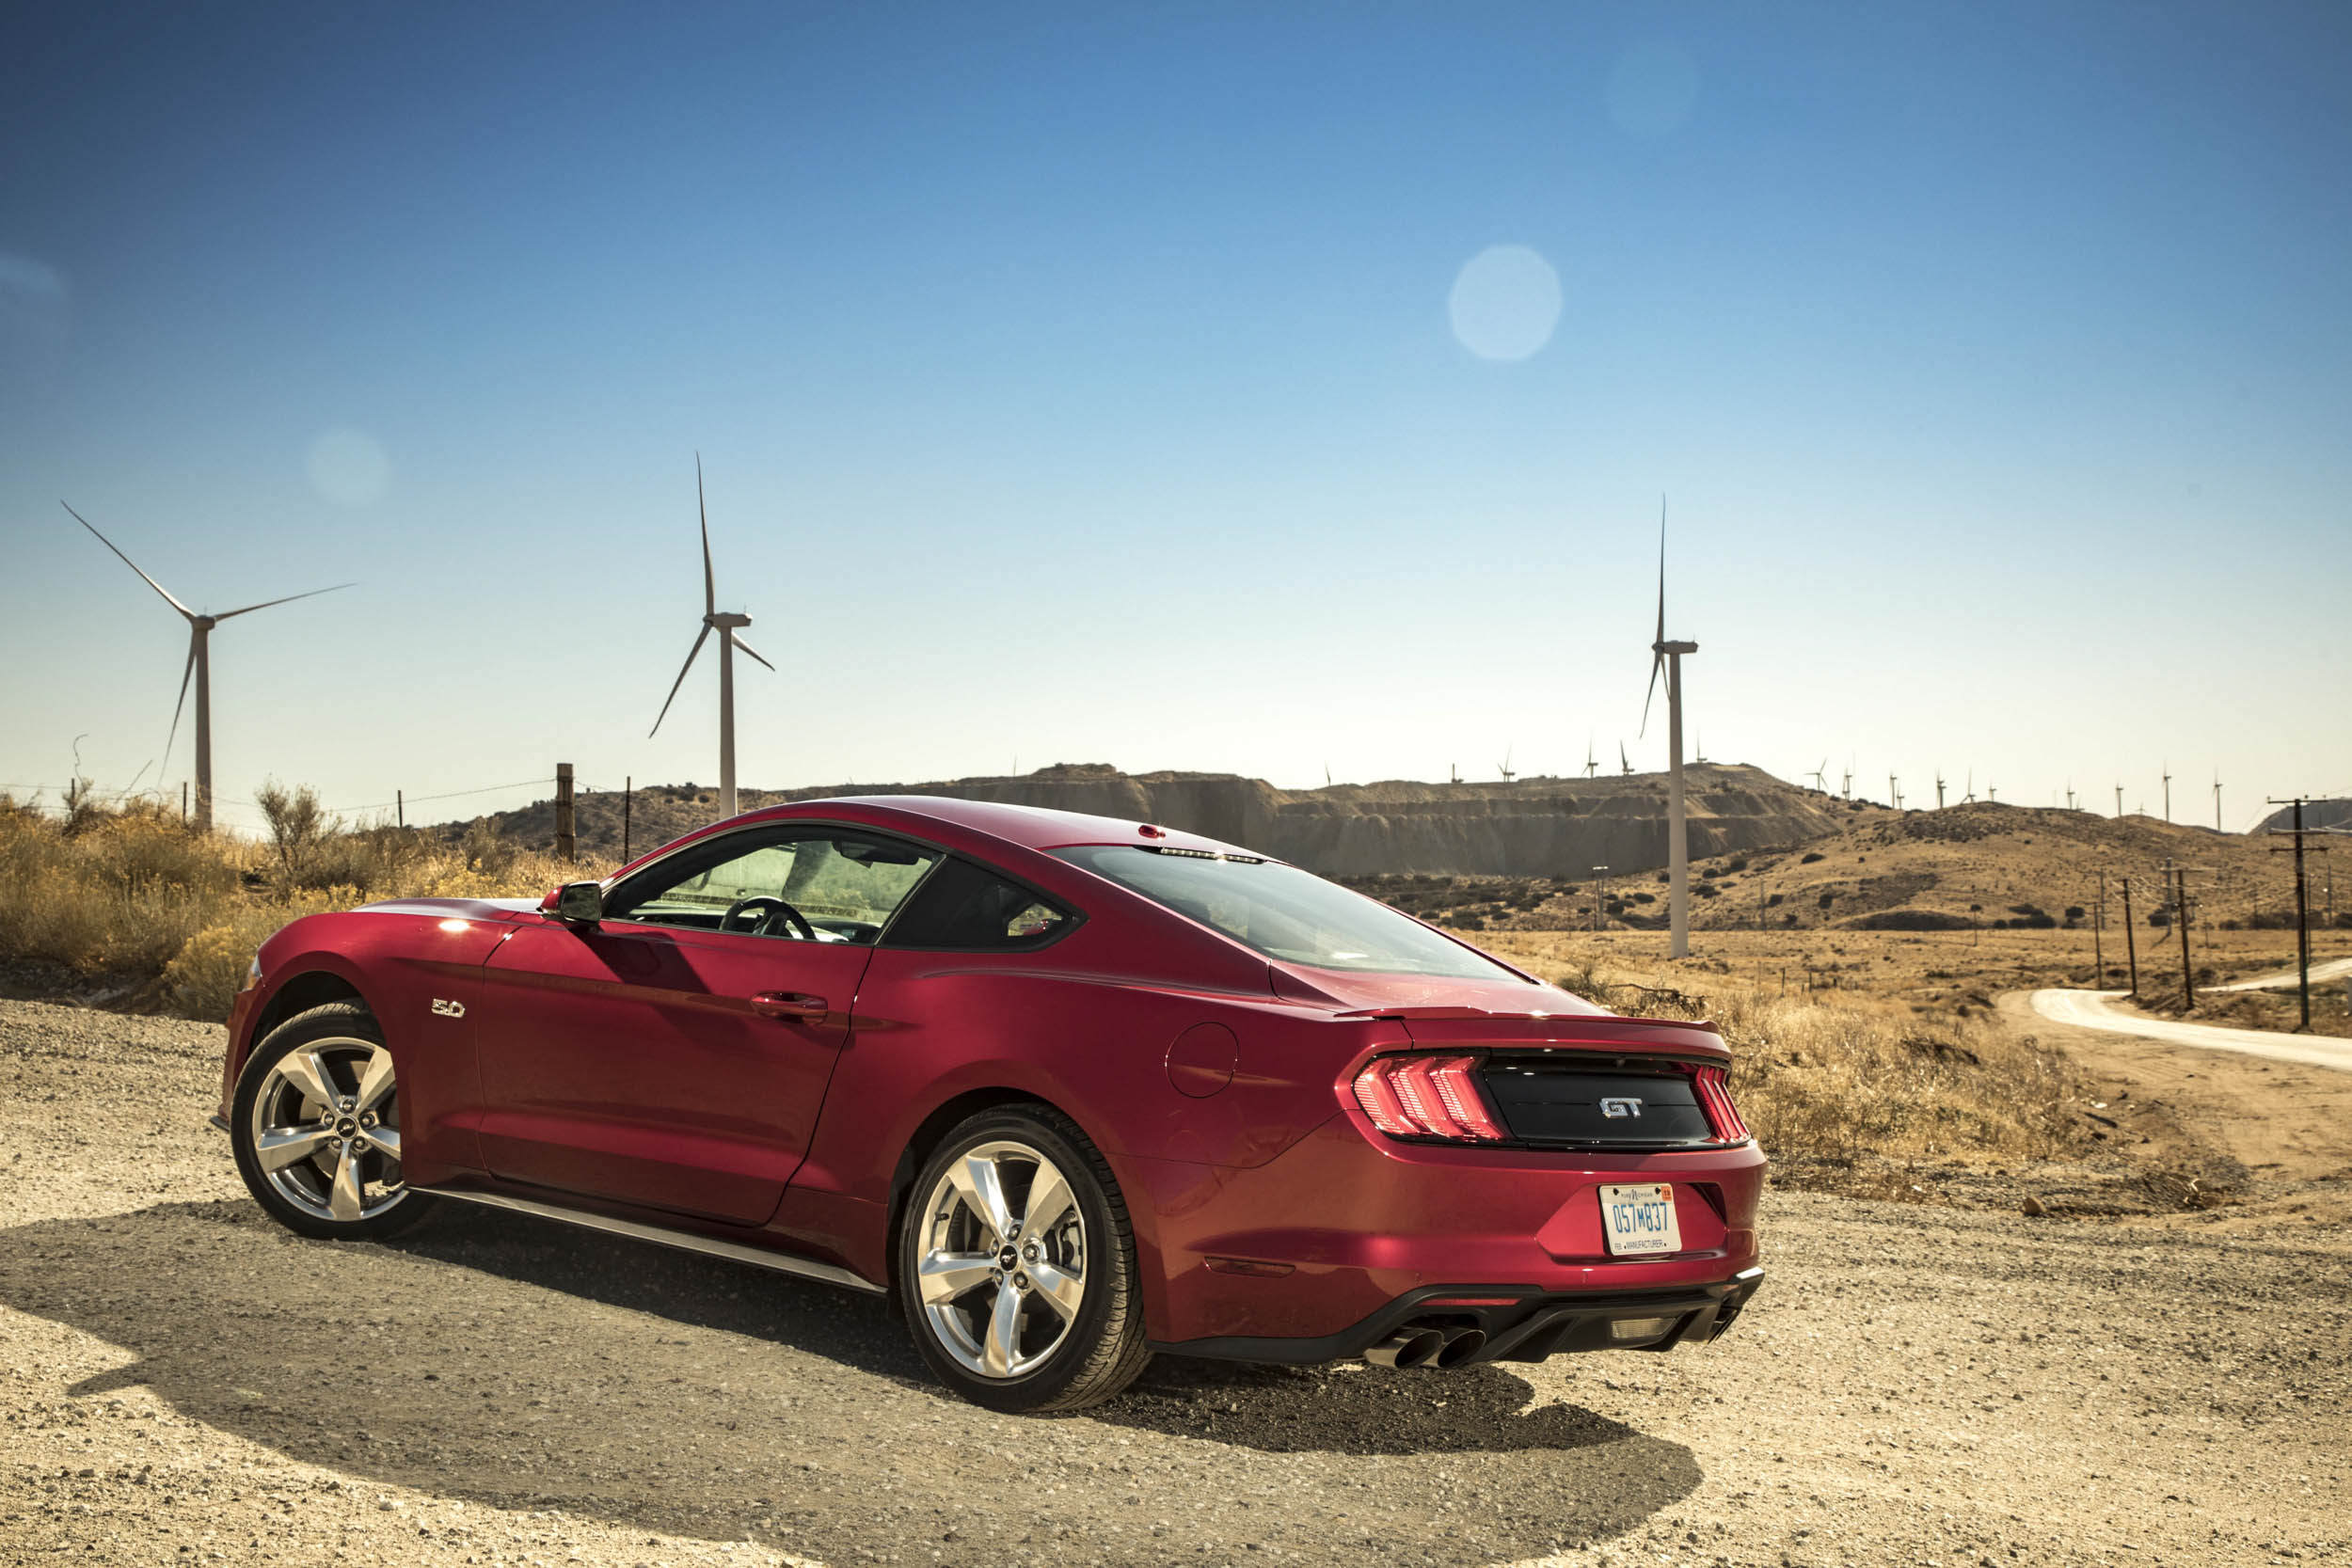 2018 Ford Mustang GT rear 3/4